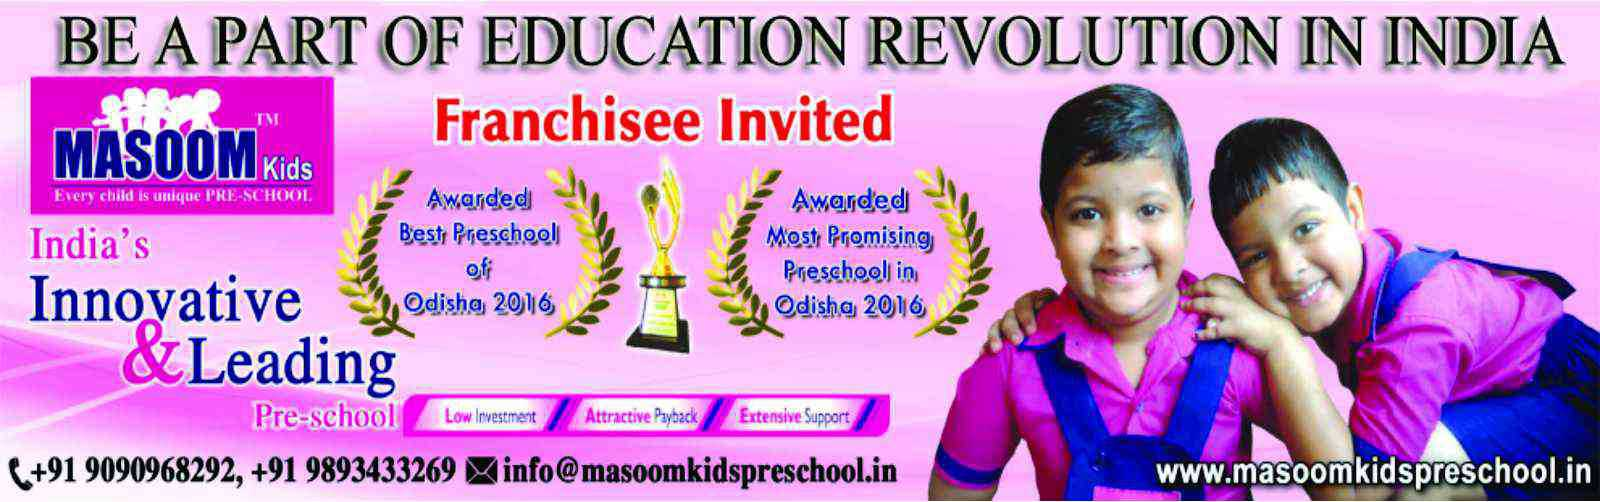 admin/photos/Masoom kids preschool